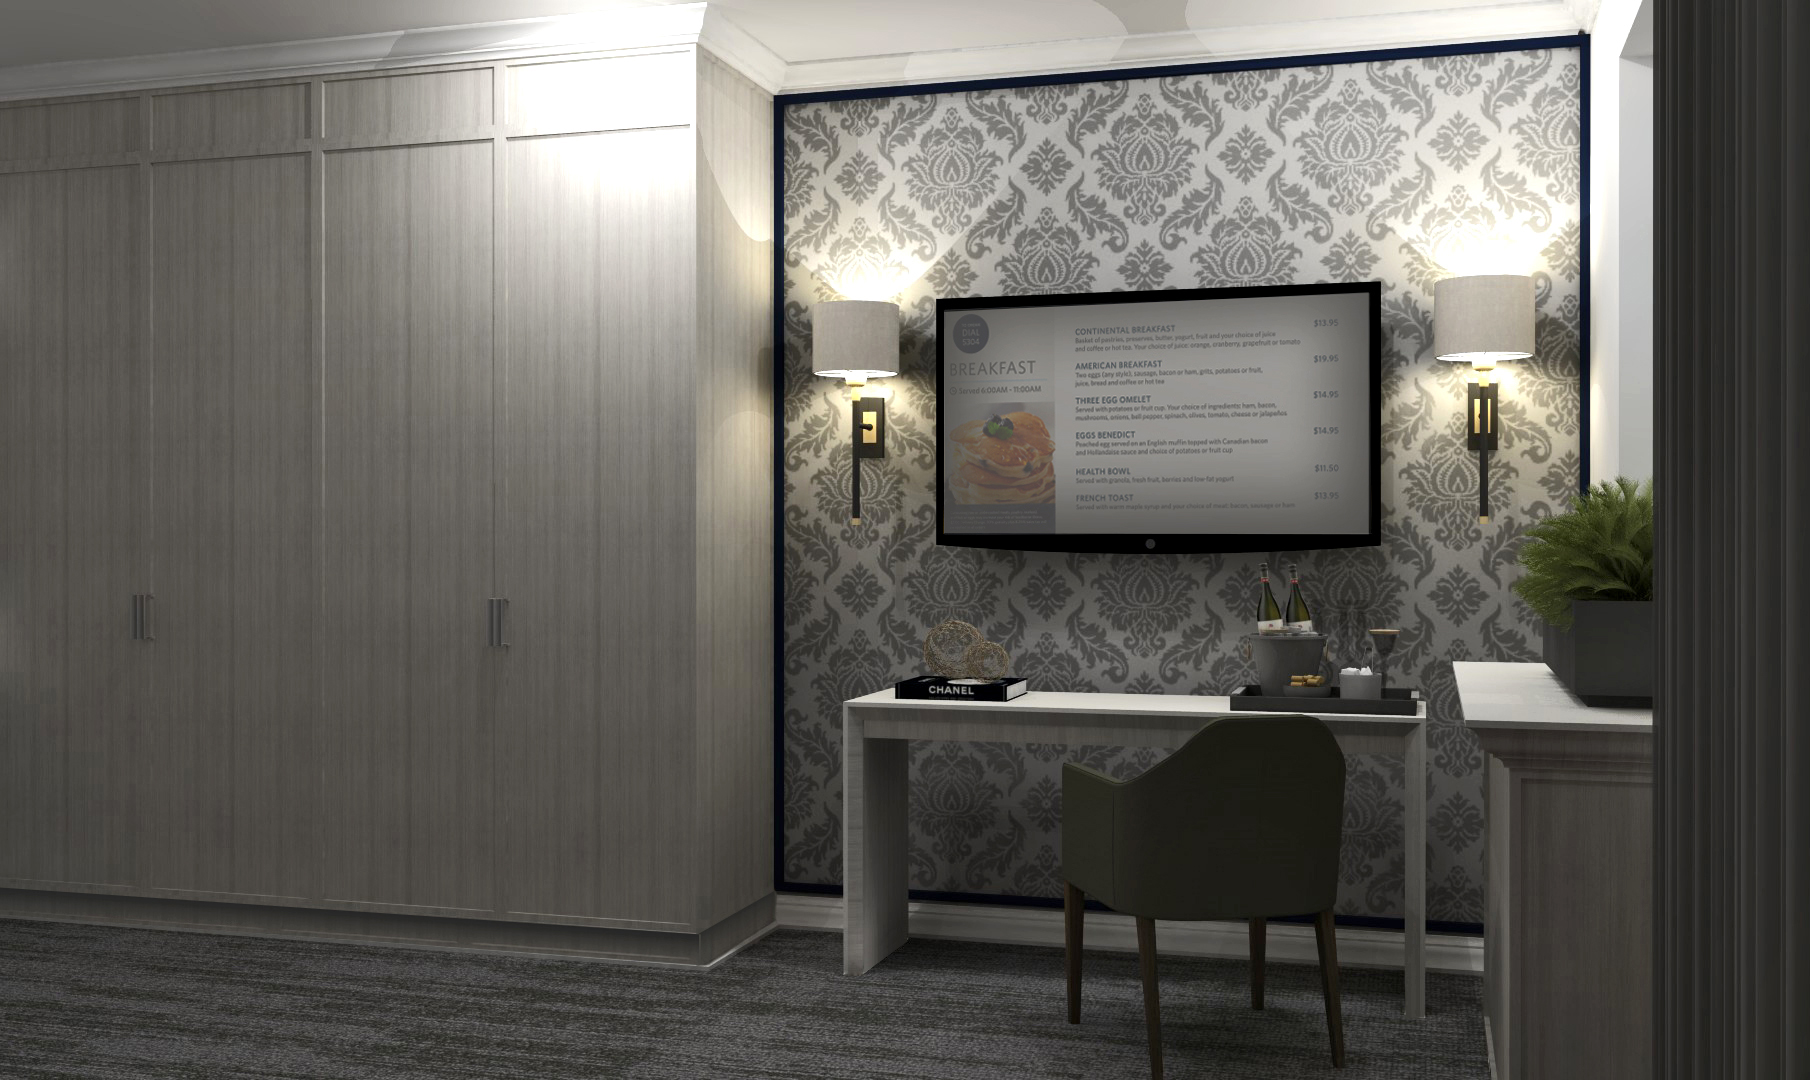 National Club hotel suite desk with digital screen and patterned wallpaper